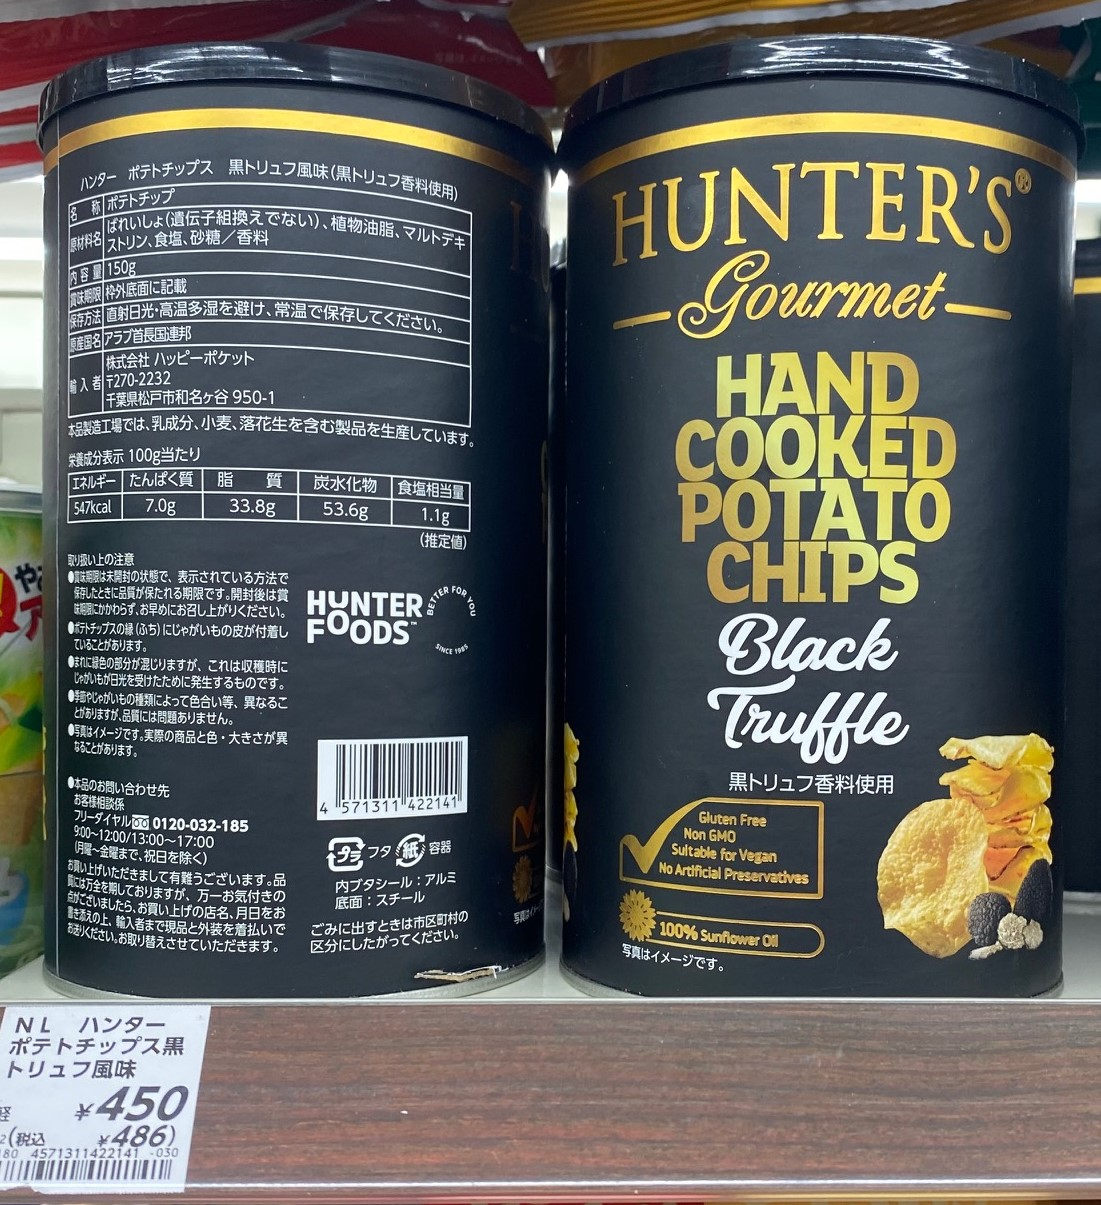 Natural Lawson Hunter's Gourmet Black Truffle Hand Cooked Potato Chips